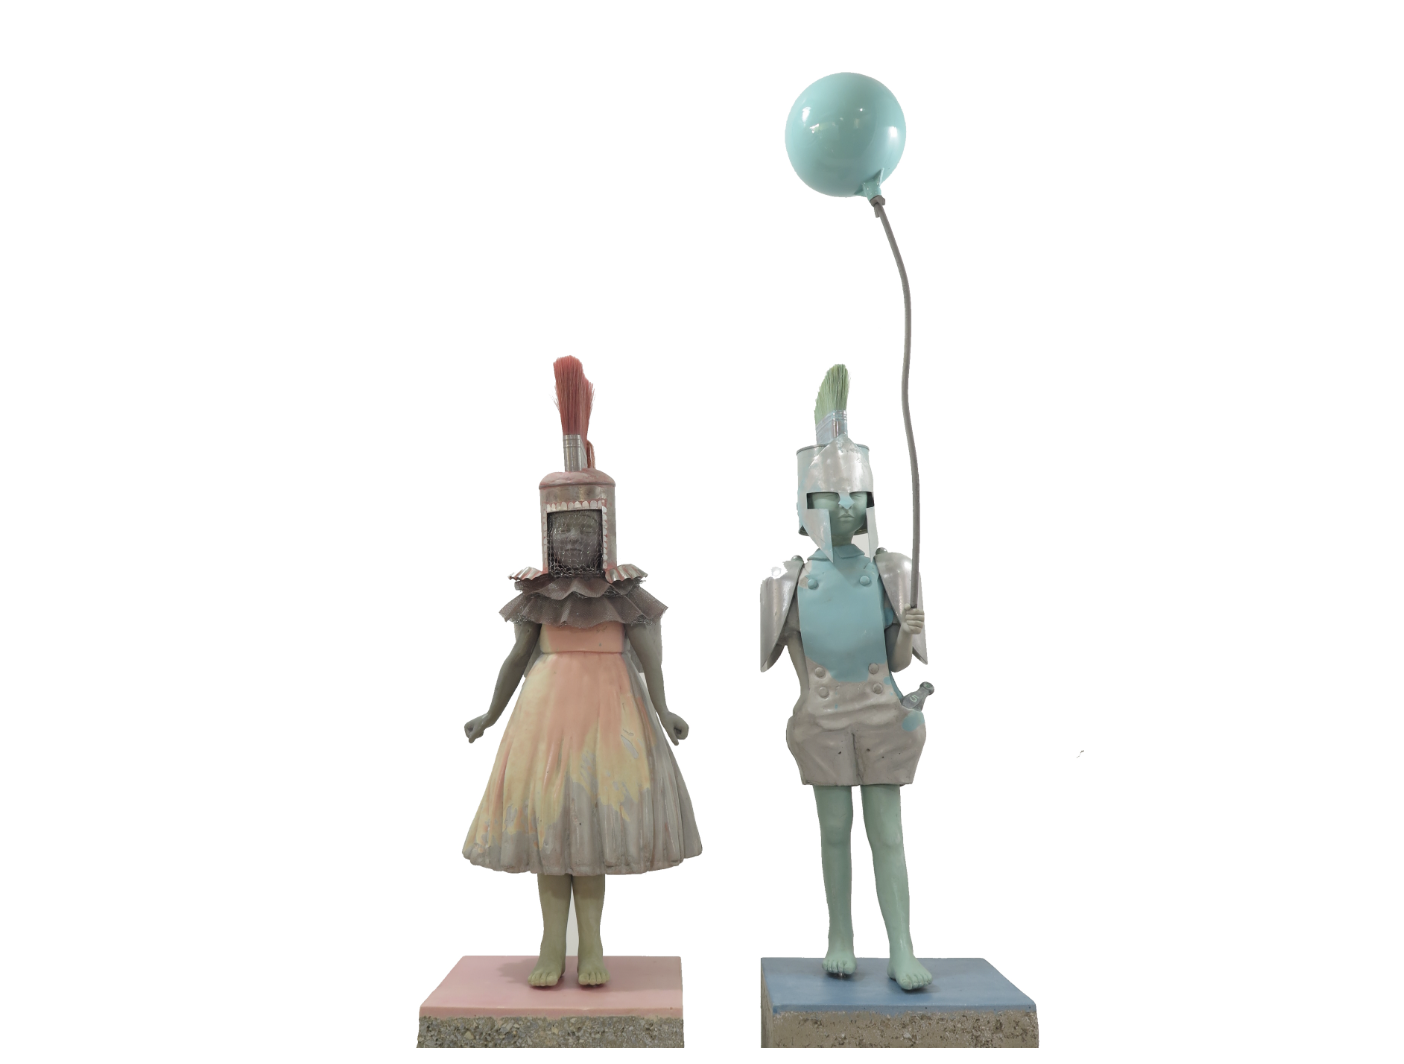 Haidee Nel Artwing  'Boy & Girl' from Infantry Series. Ed.22 Year: 2106 Size: 29 x 24 x 57 cm(h) each. Mixed media: cement, resin, marble dust, spoons, brush, coffee tins, forks, plumbing materials  $7.600